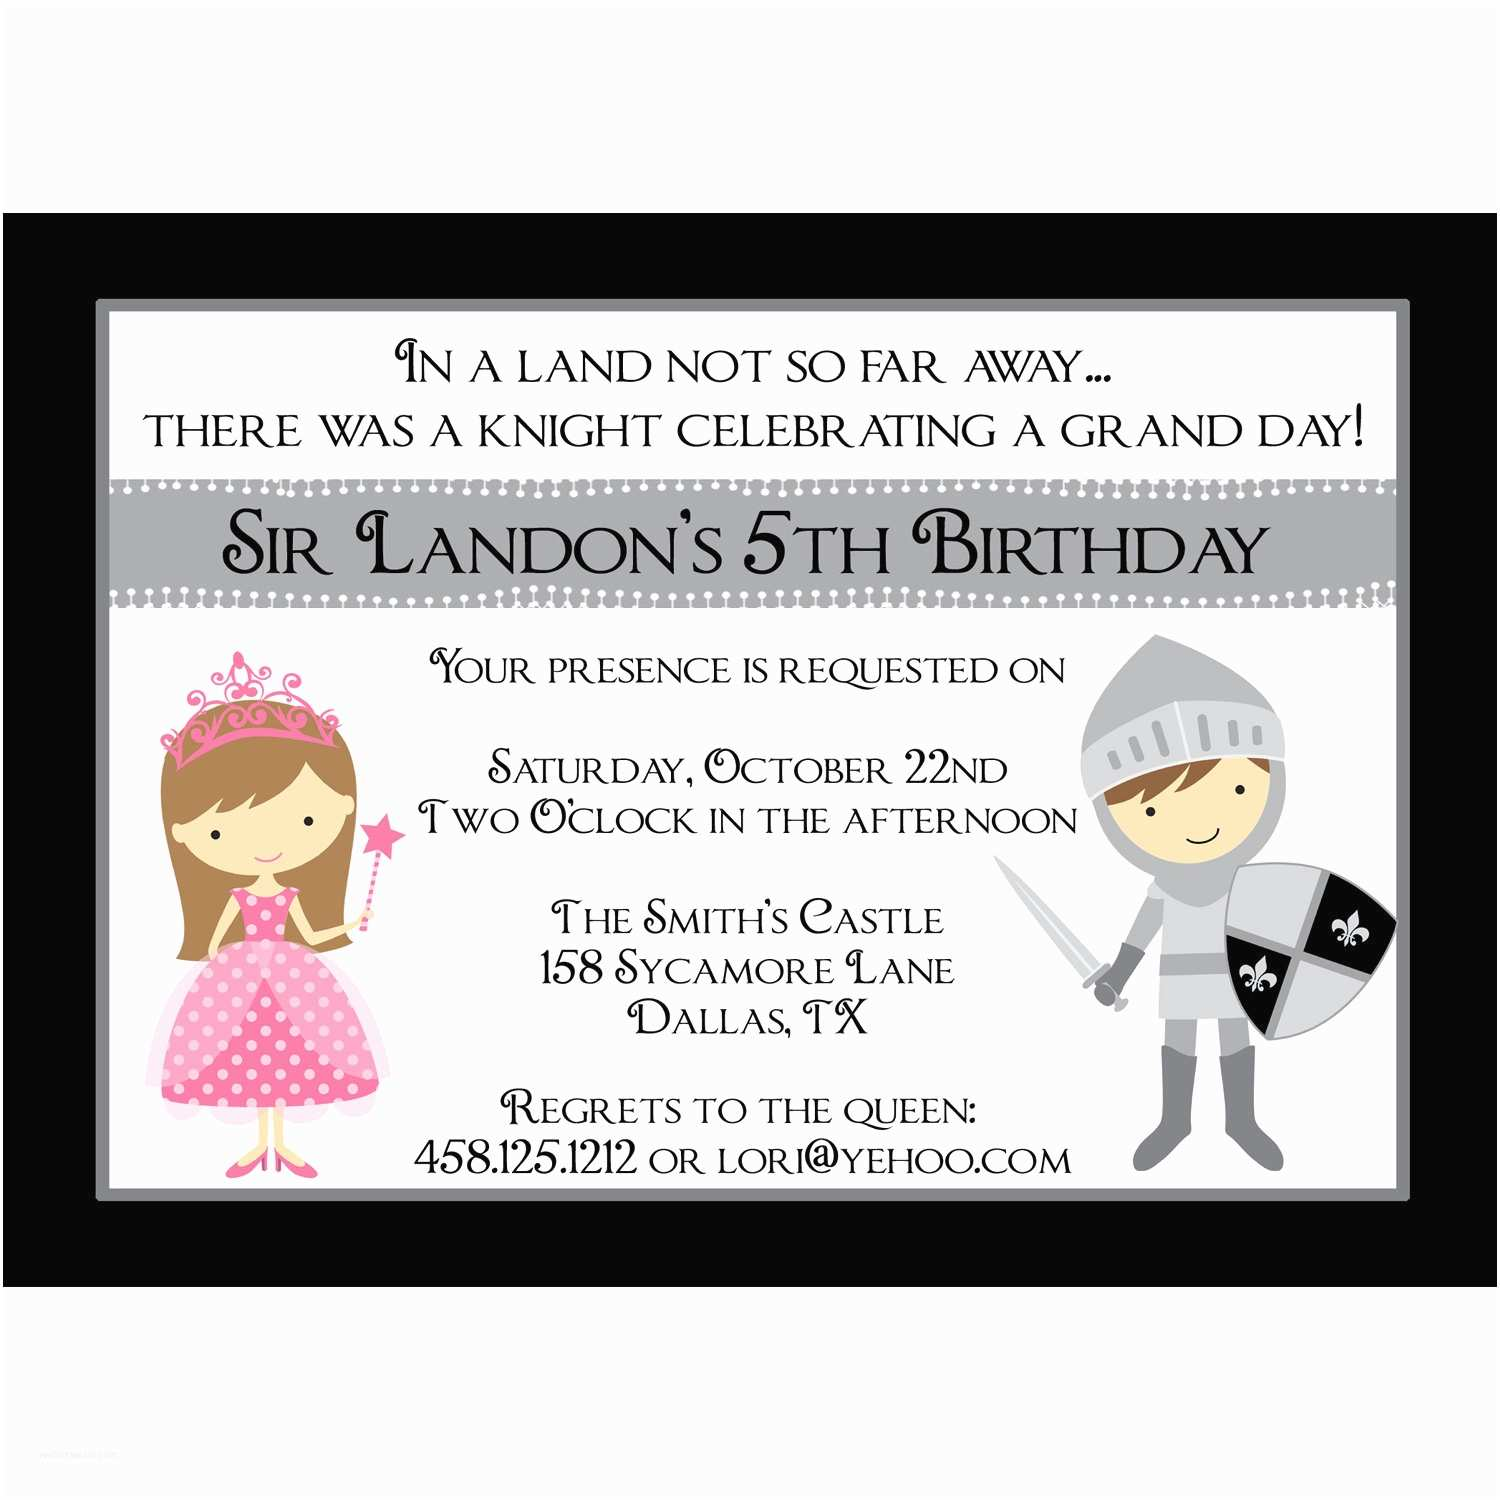 Personalized Birthday Invitations Knight & Princess Personalized Birthday Invitation Digital